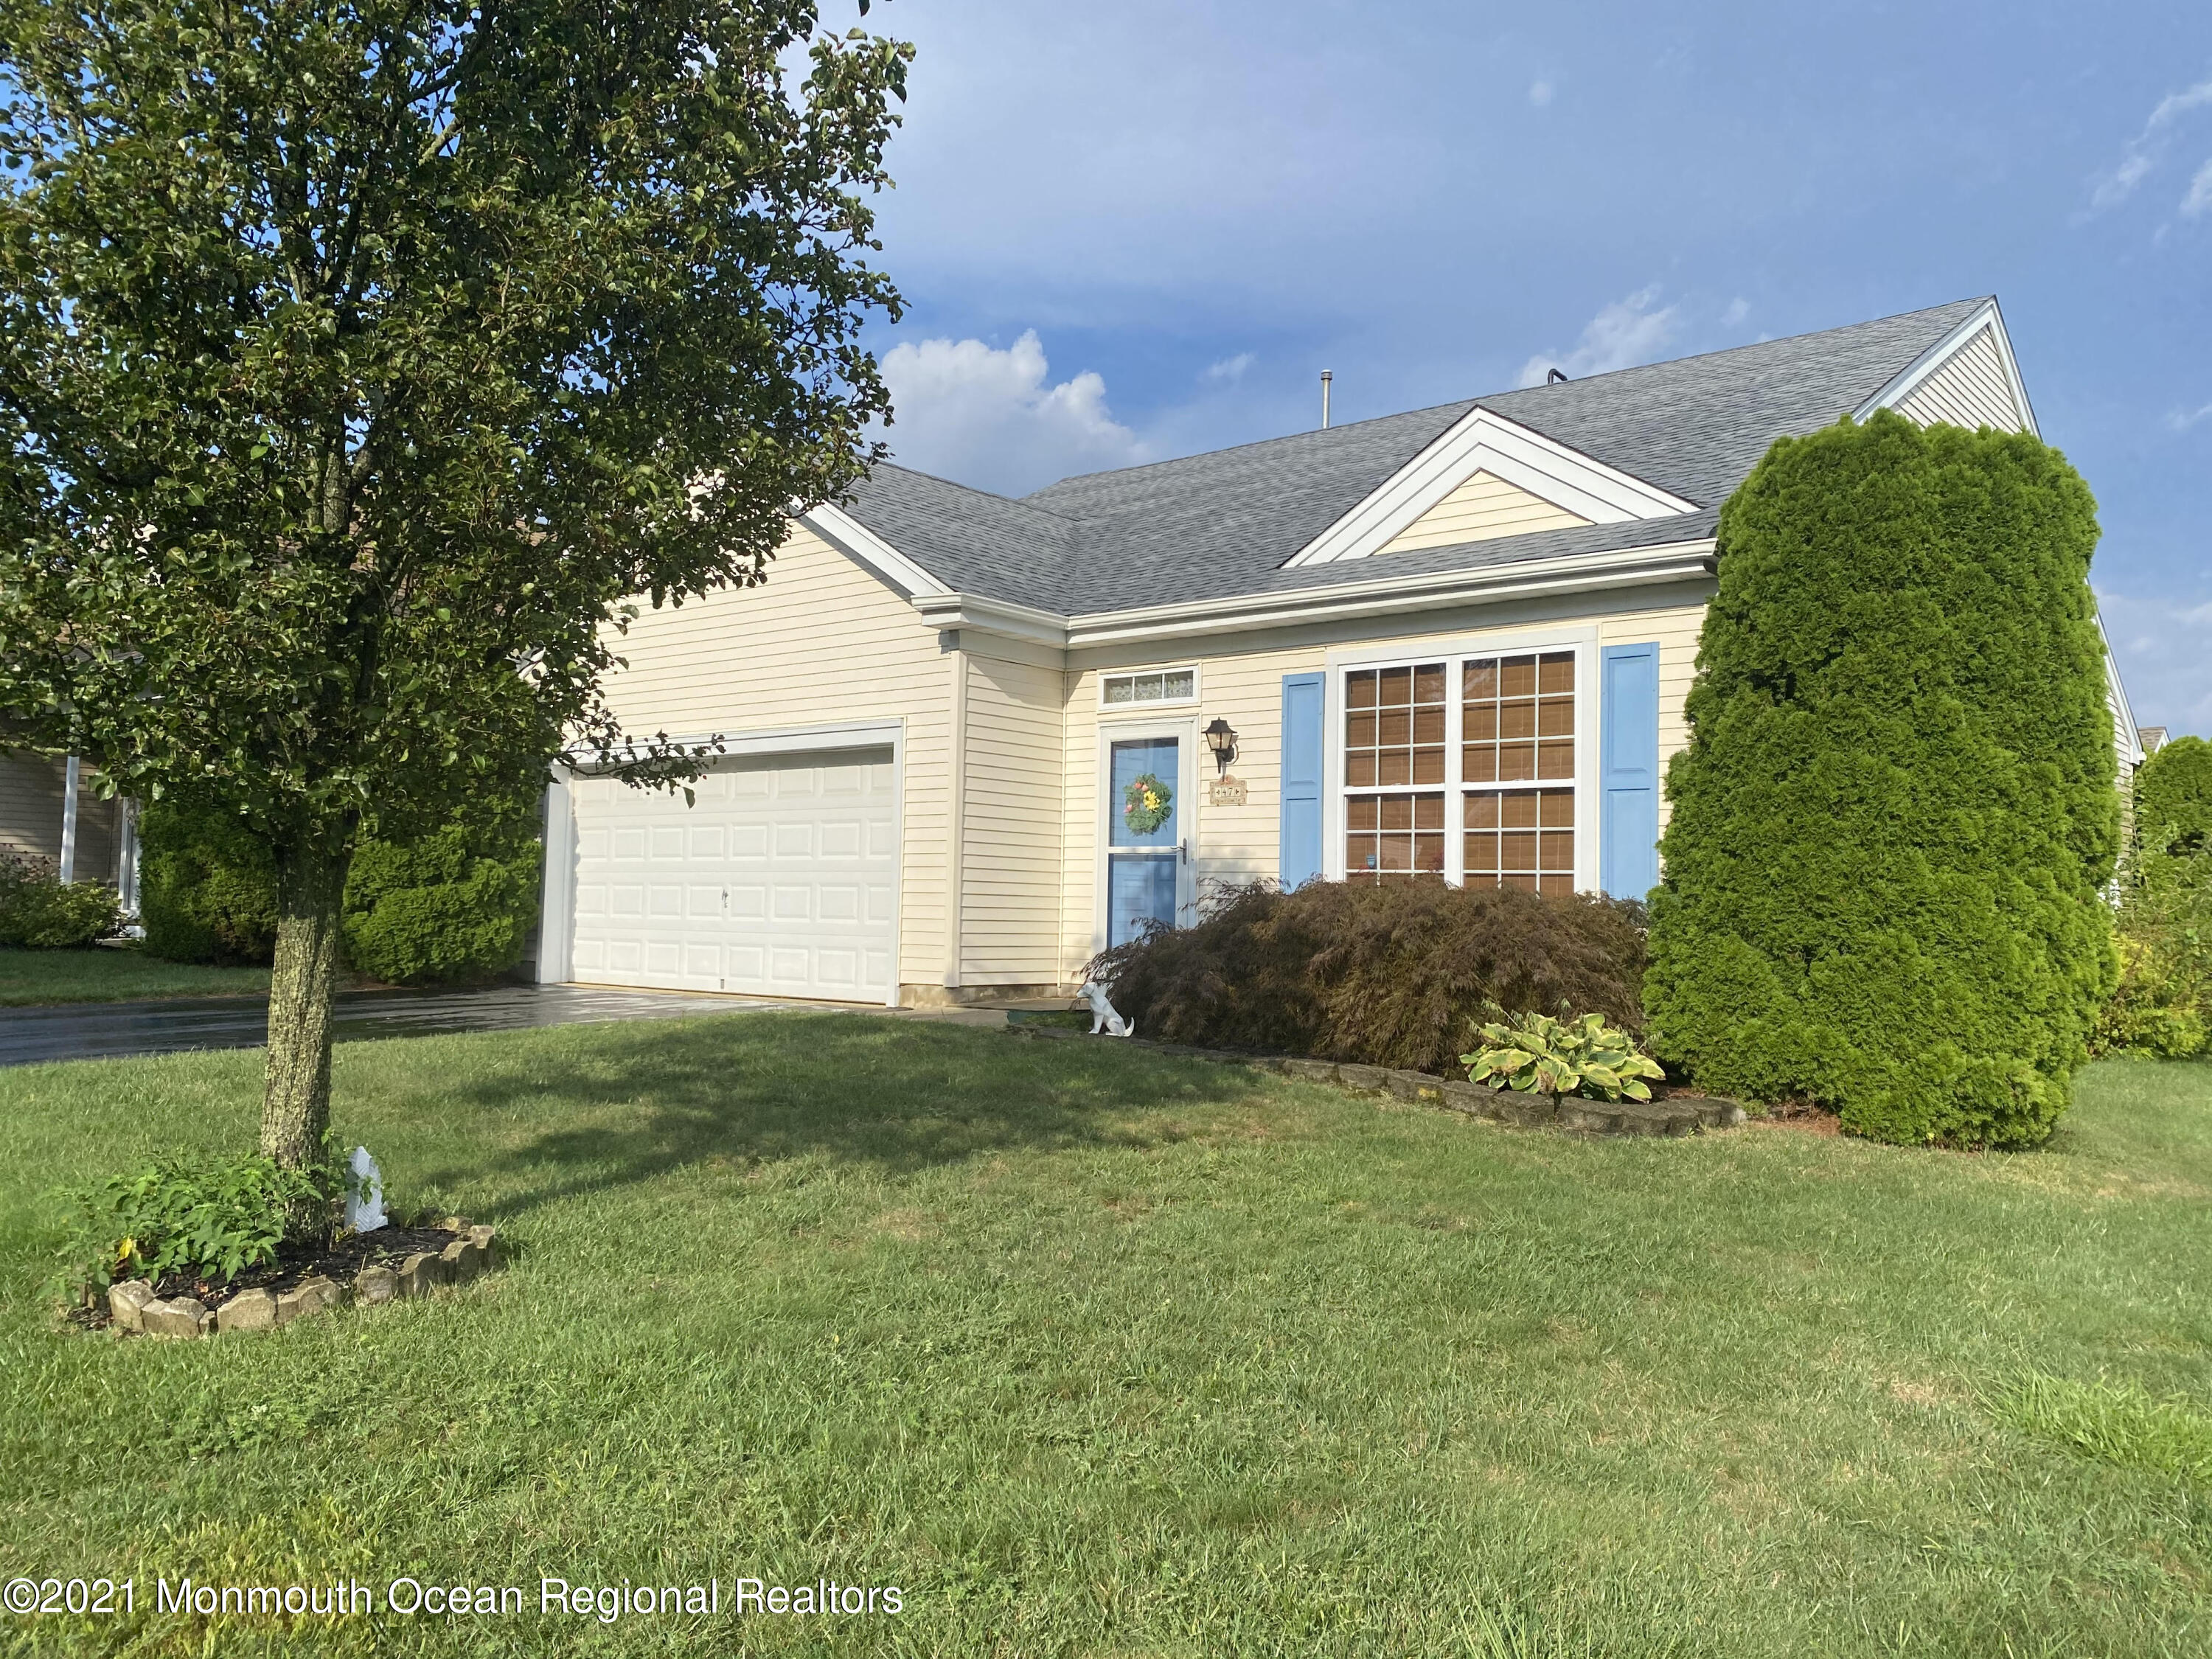 Beautifully maintained Barnegat model in Barnegat's Heritage Bay Community. This two bedroom, two bathroom home features an open concept living room, dining room combination. The eat in kitchen is open to the family room. The kitchen features a newer stainless steel refrigerator. The roof is new as of late Winter 2020. The back sliding door opens up to a patio with built in privacy.  The master bedroom features a large walk in closet and private master bath. The Clubhouse features a gym, library, and pool. Close to highways, restaurants, shopping and beaches!